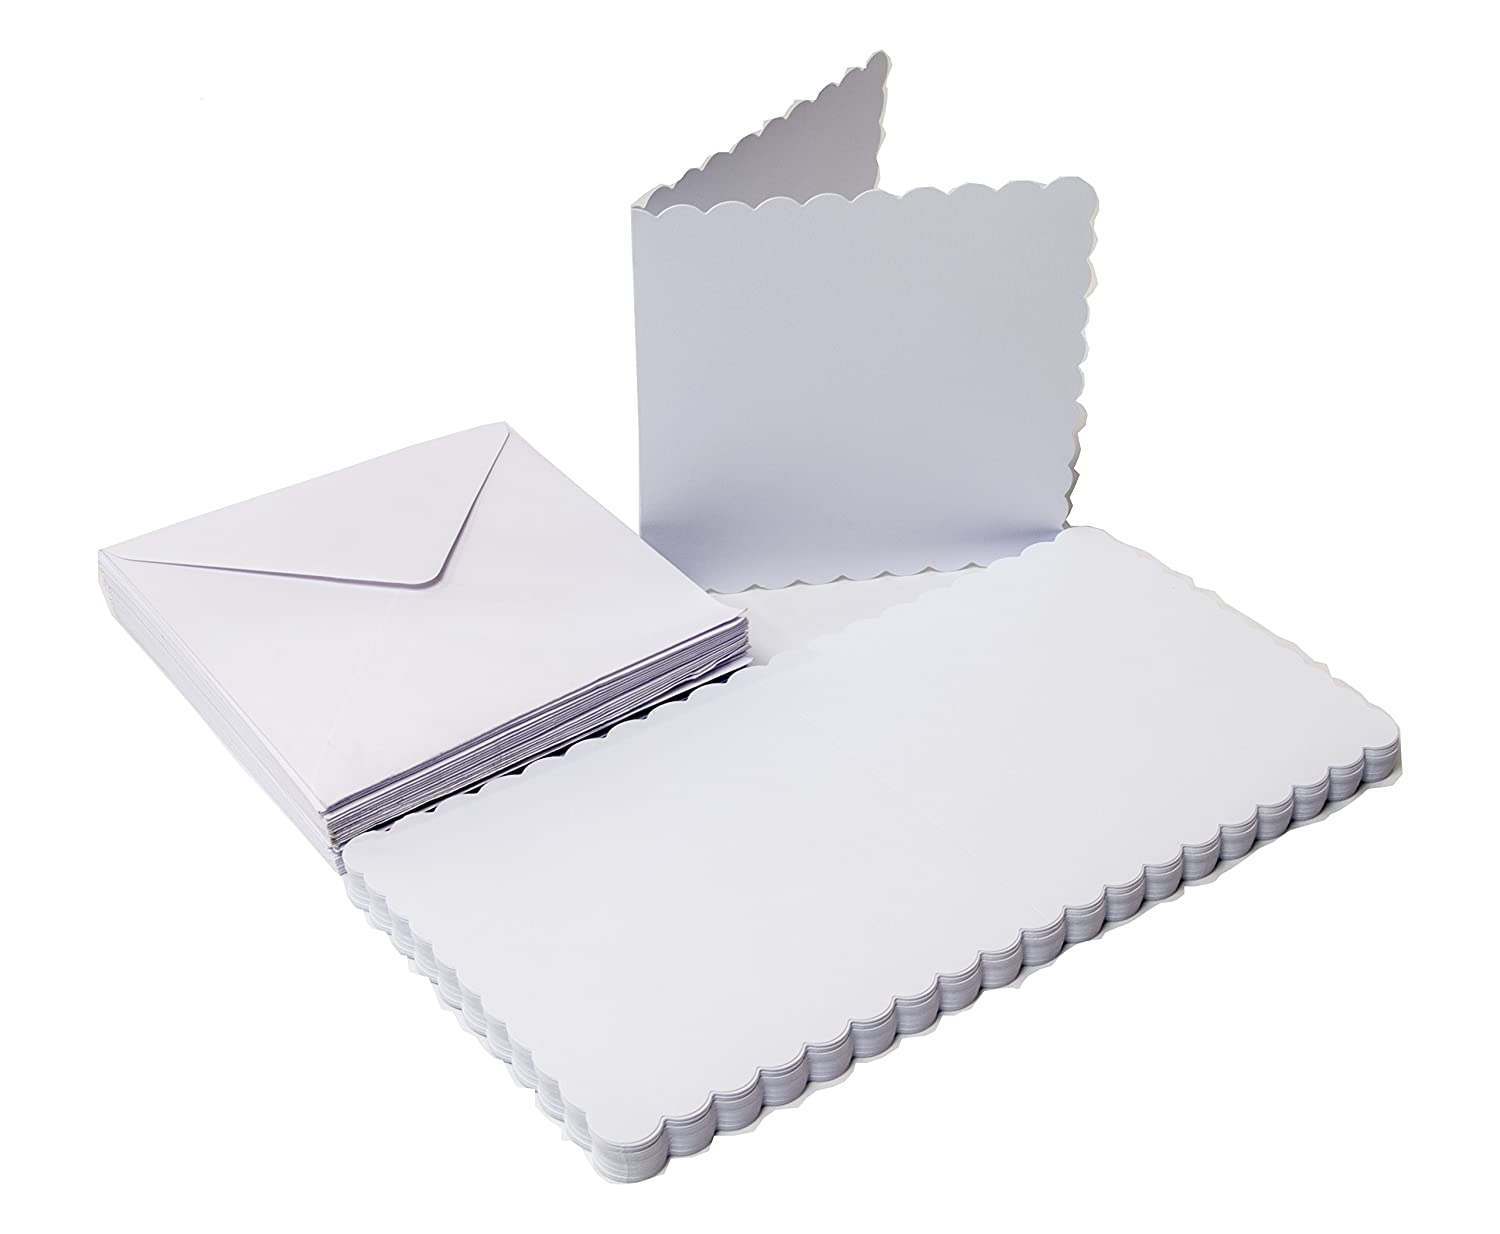 Card The Paper Palace 25 White Scalloped Cards /& Envelopes 7 x 7 17.78 x 17.78 x 17.78 cm